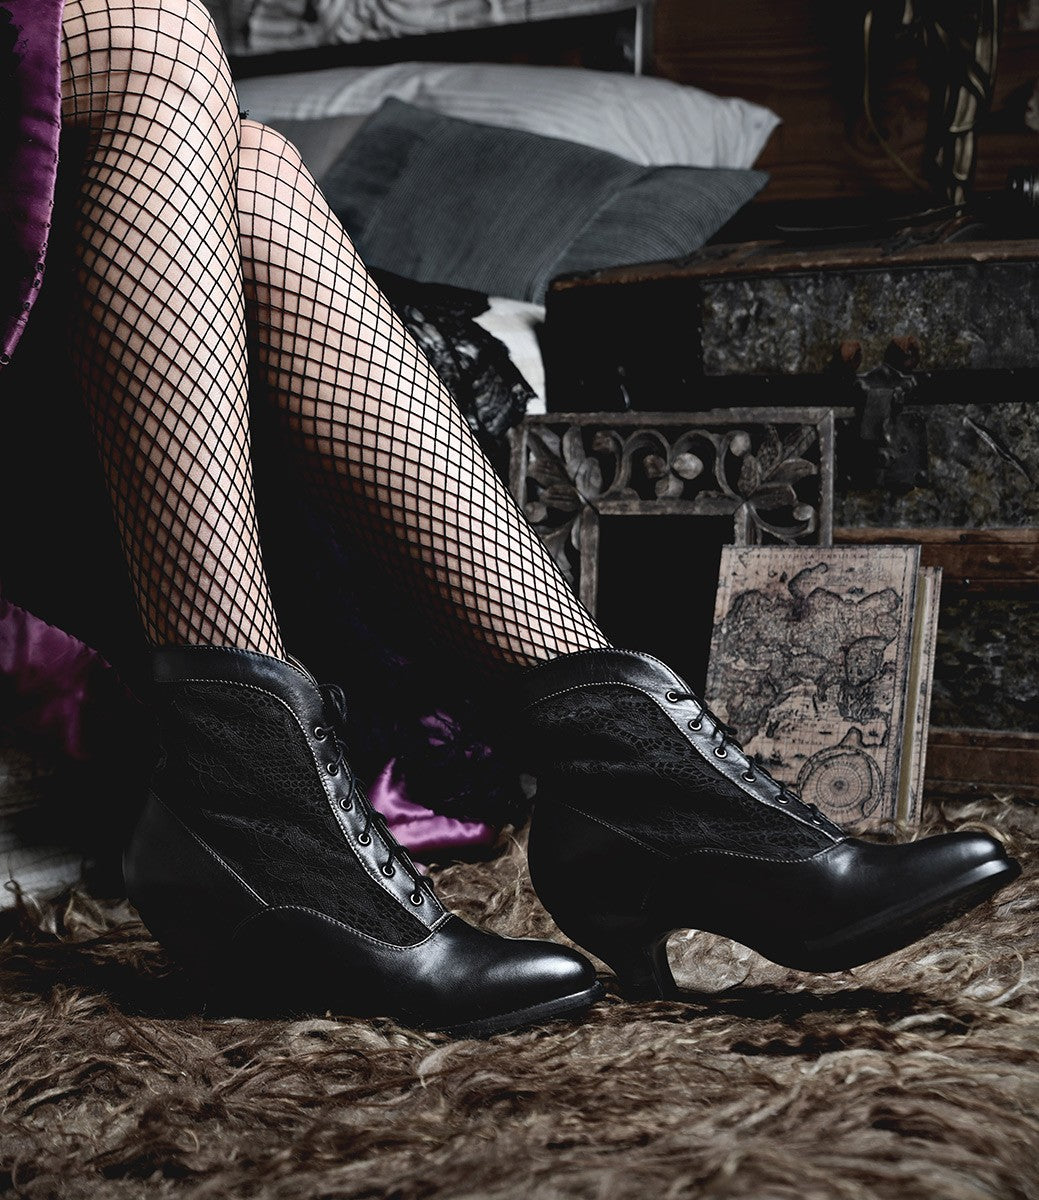 Edwardian Shoes & Boots | Titanic Shoes Vintage Style Victorian Lace Up Leather Boots in Black Rustic $235.00 AT vintagedancer.com